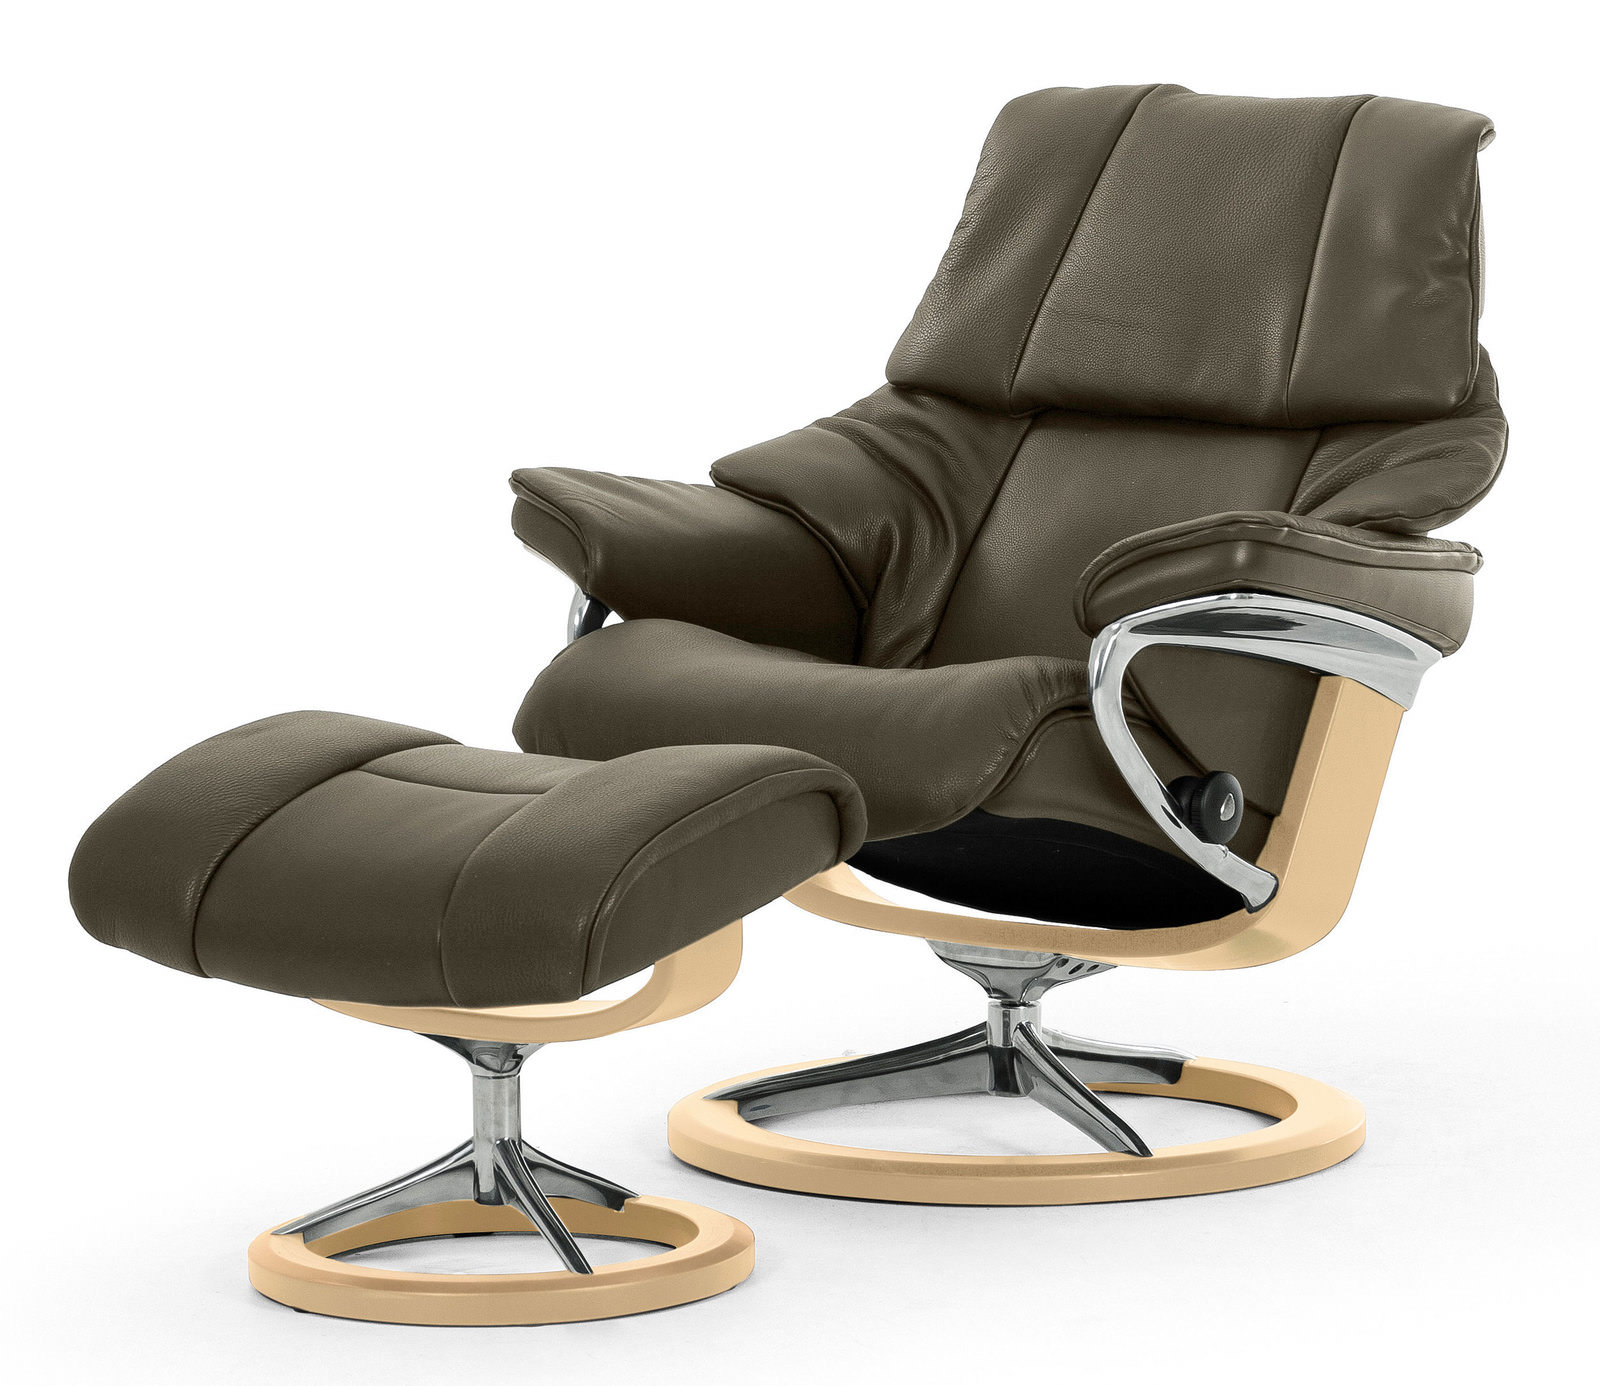 Stresless Stressless Sessel